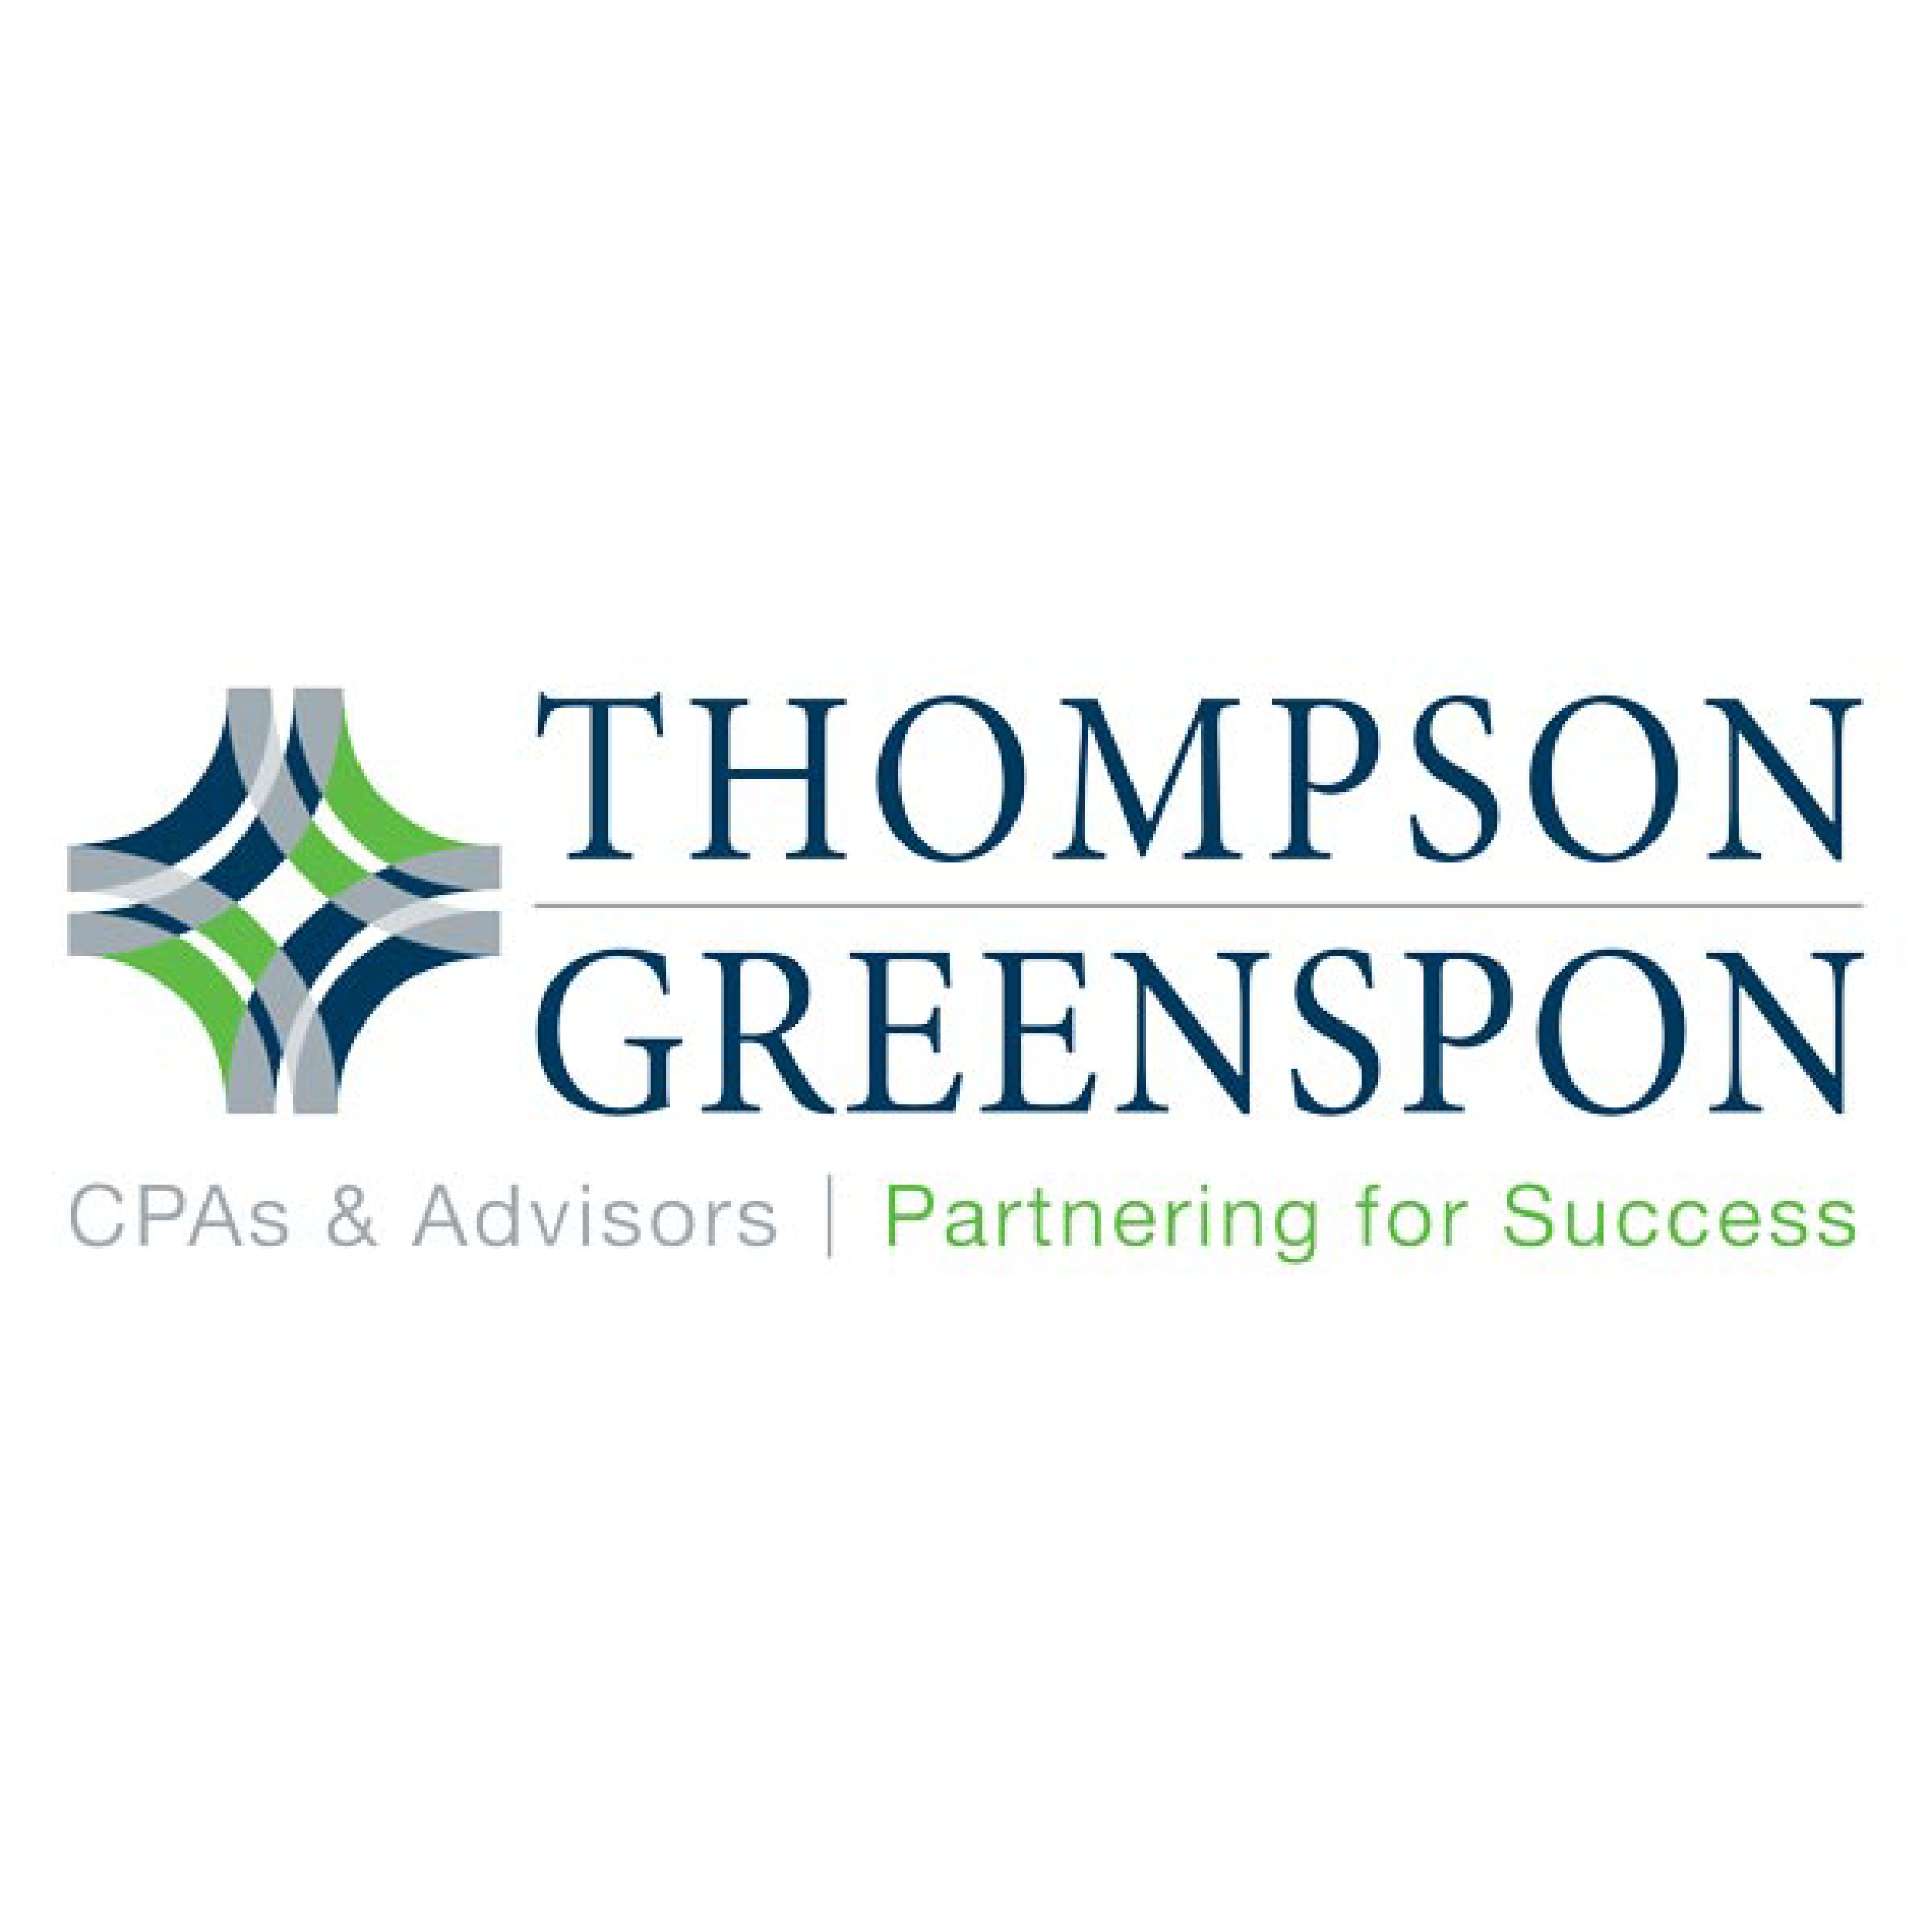 thompson-greenspon-cpas-advisors-logo.png